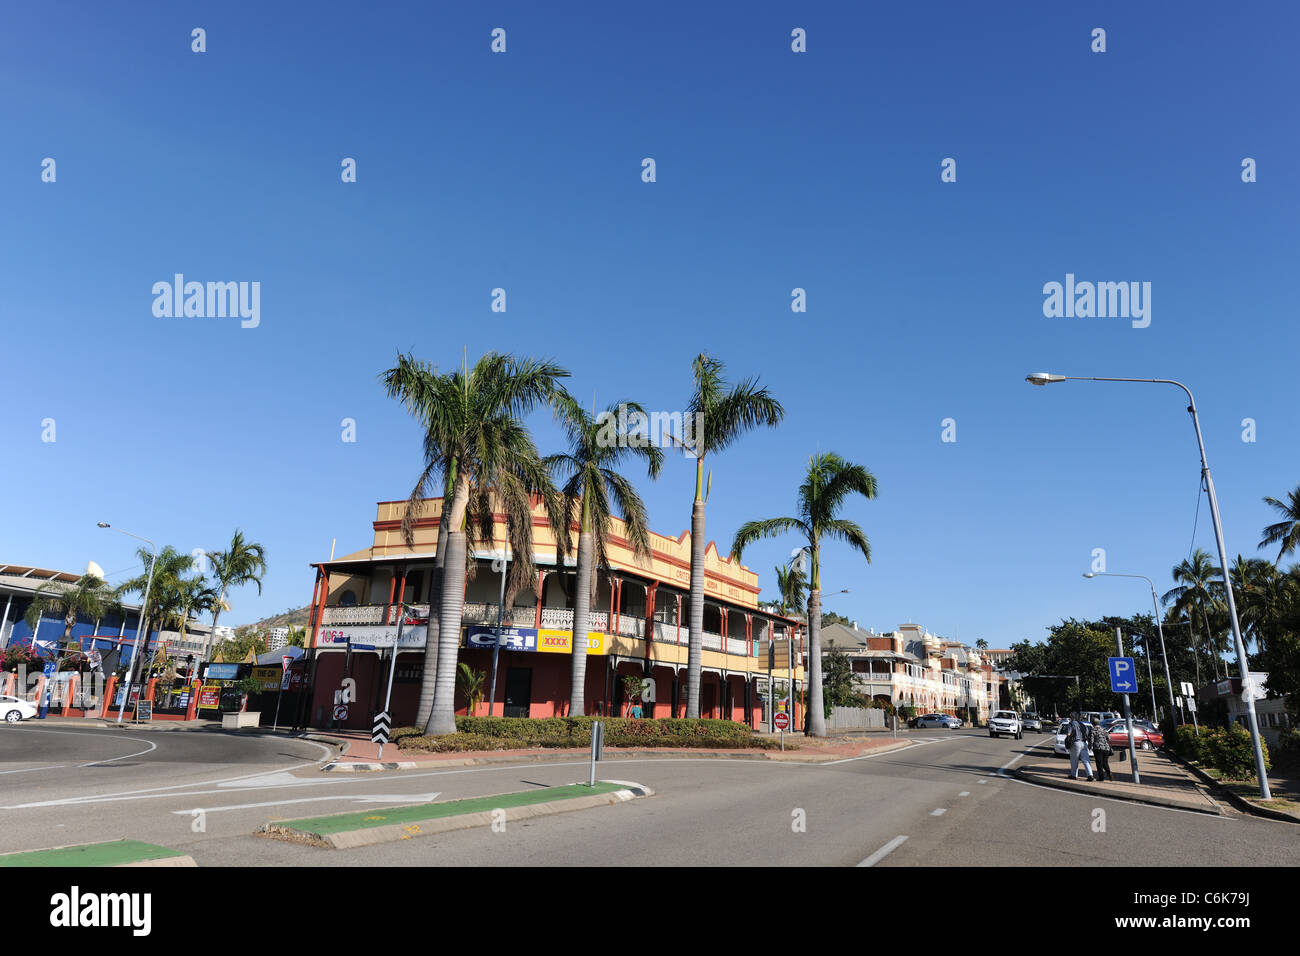 The Criterion Hotel (The Cri), on The Strand, Townsville, Queensland, Australia - Stock Image